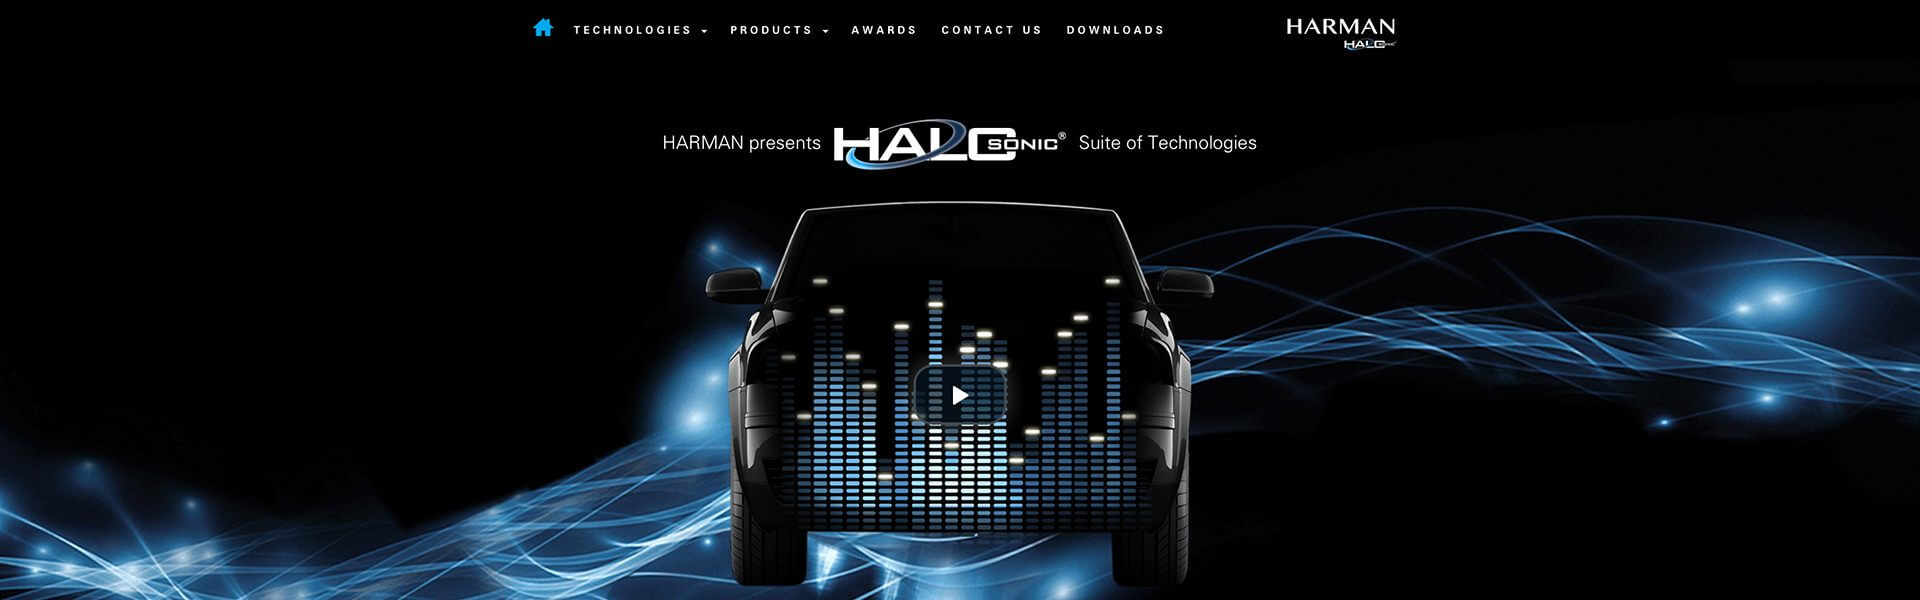 Impression HARMAN HALOsonic